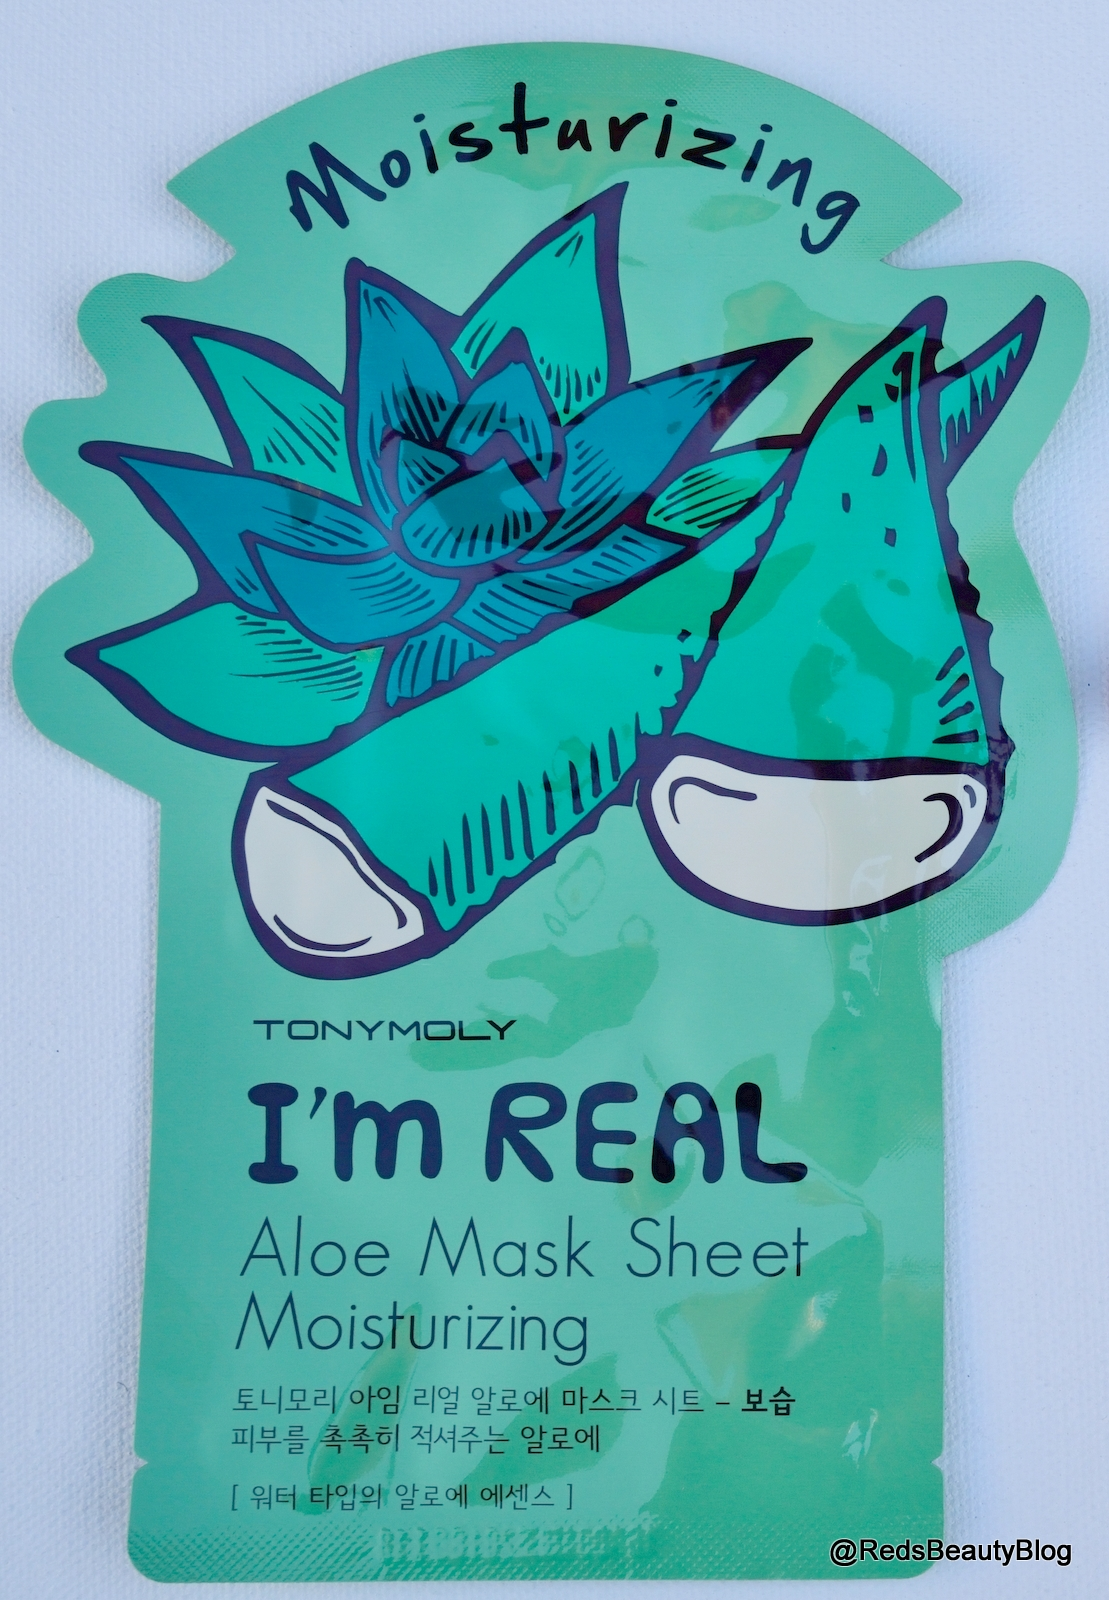 a picture of Tony Moly I'm Real Aloe Mask Sheet